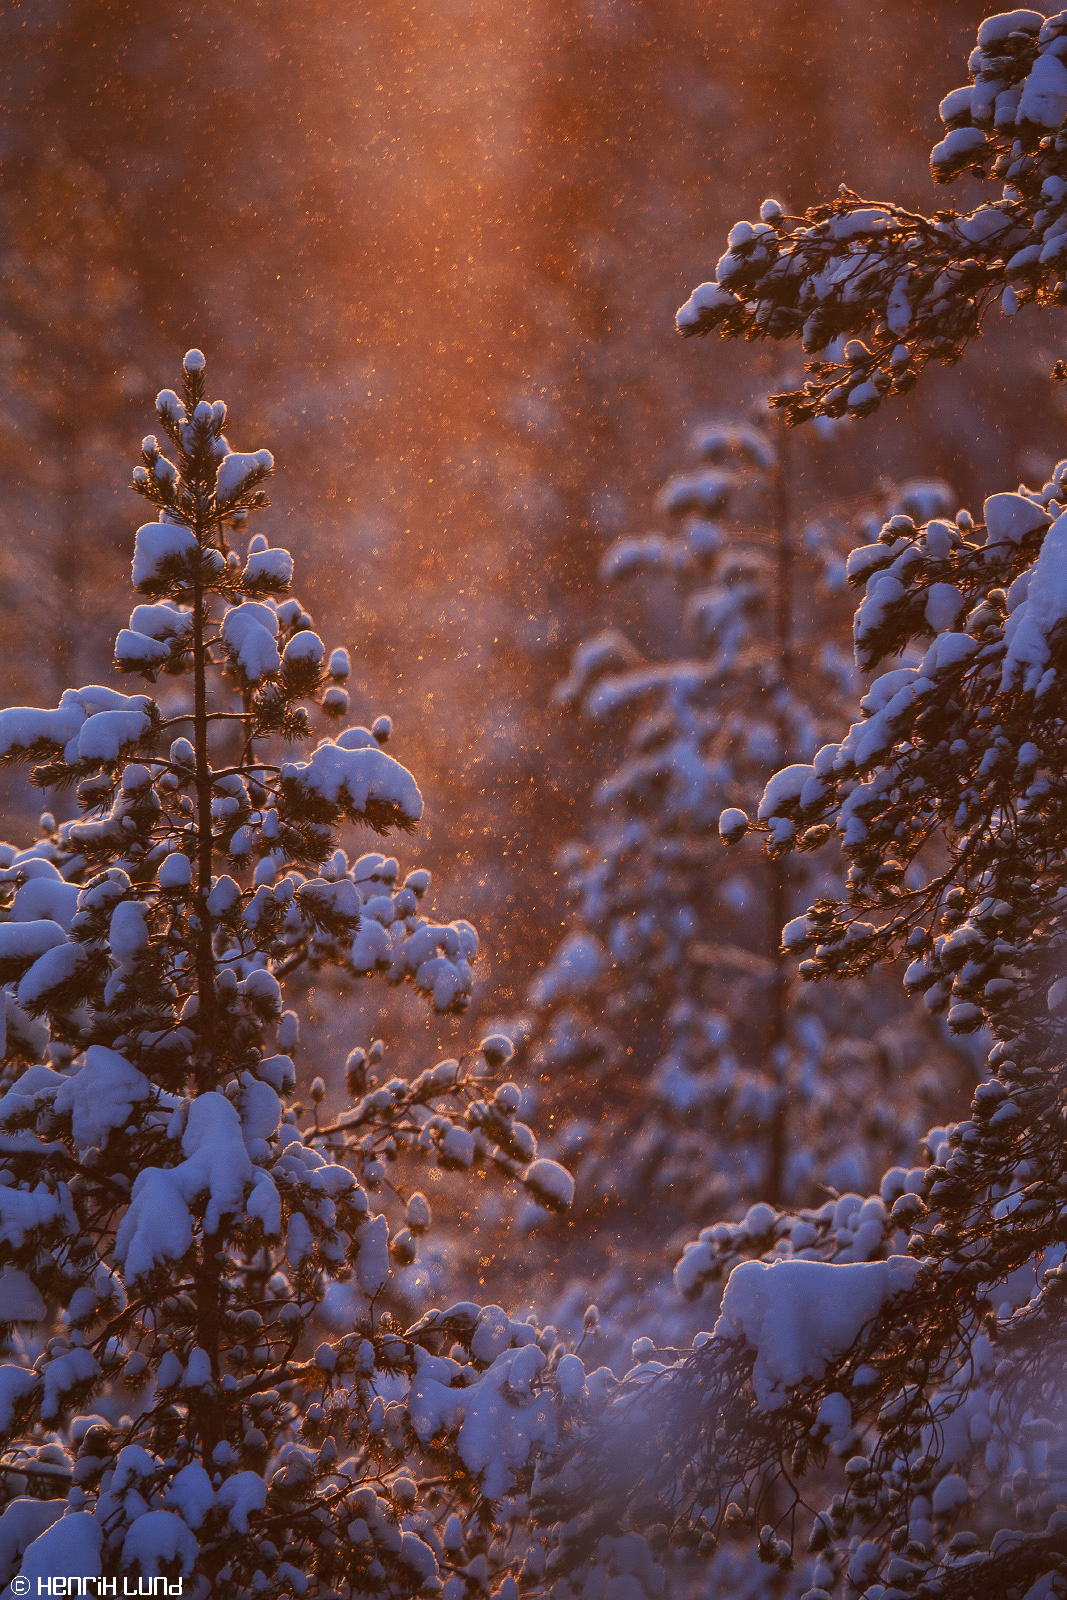 Backlit snowfall in -26, Norsjö, Sweden, January 2015.